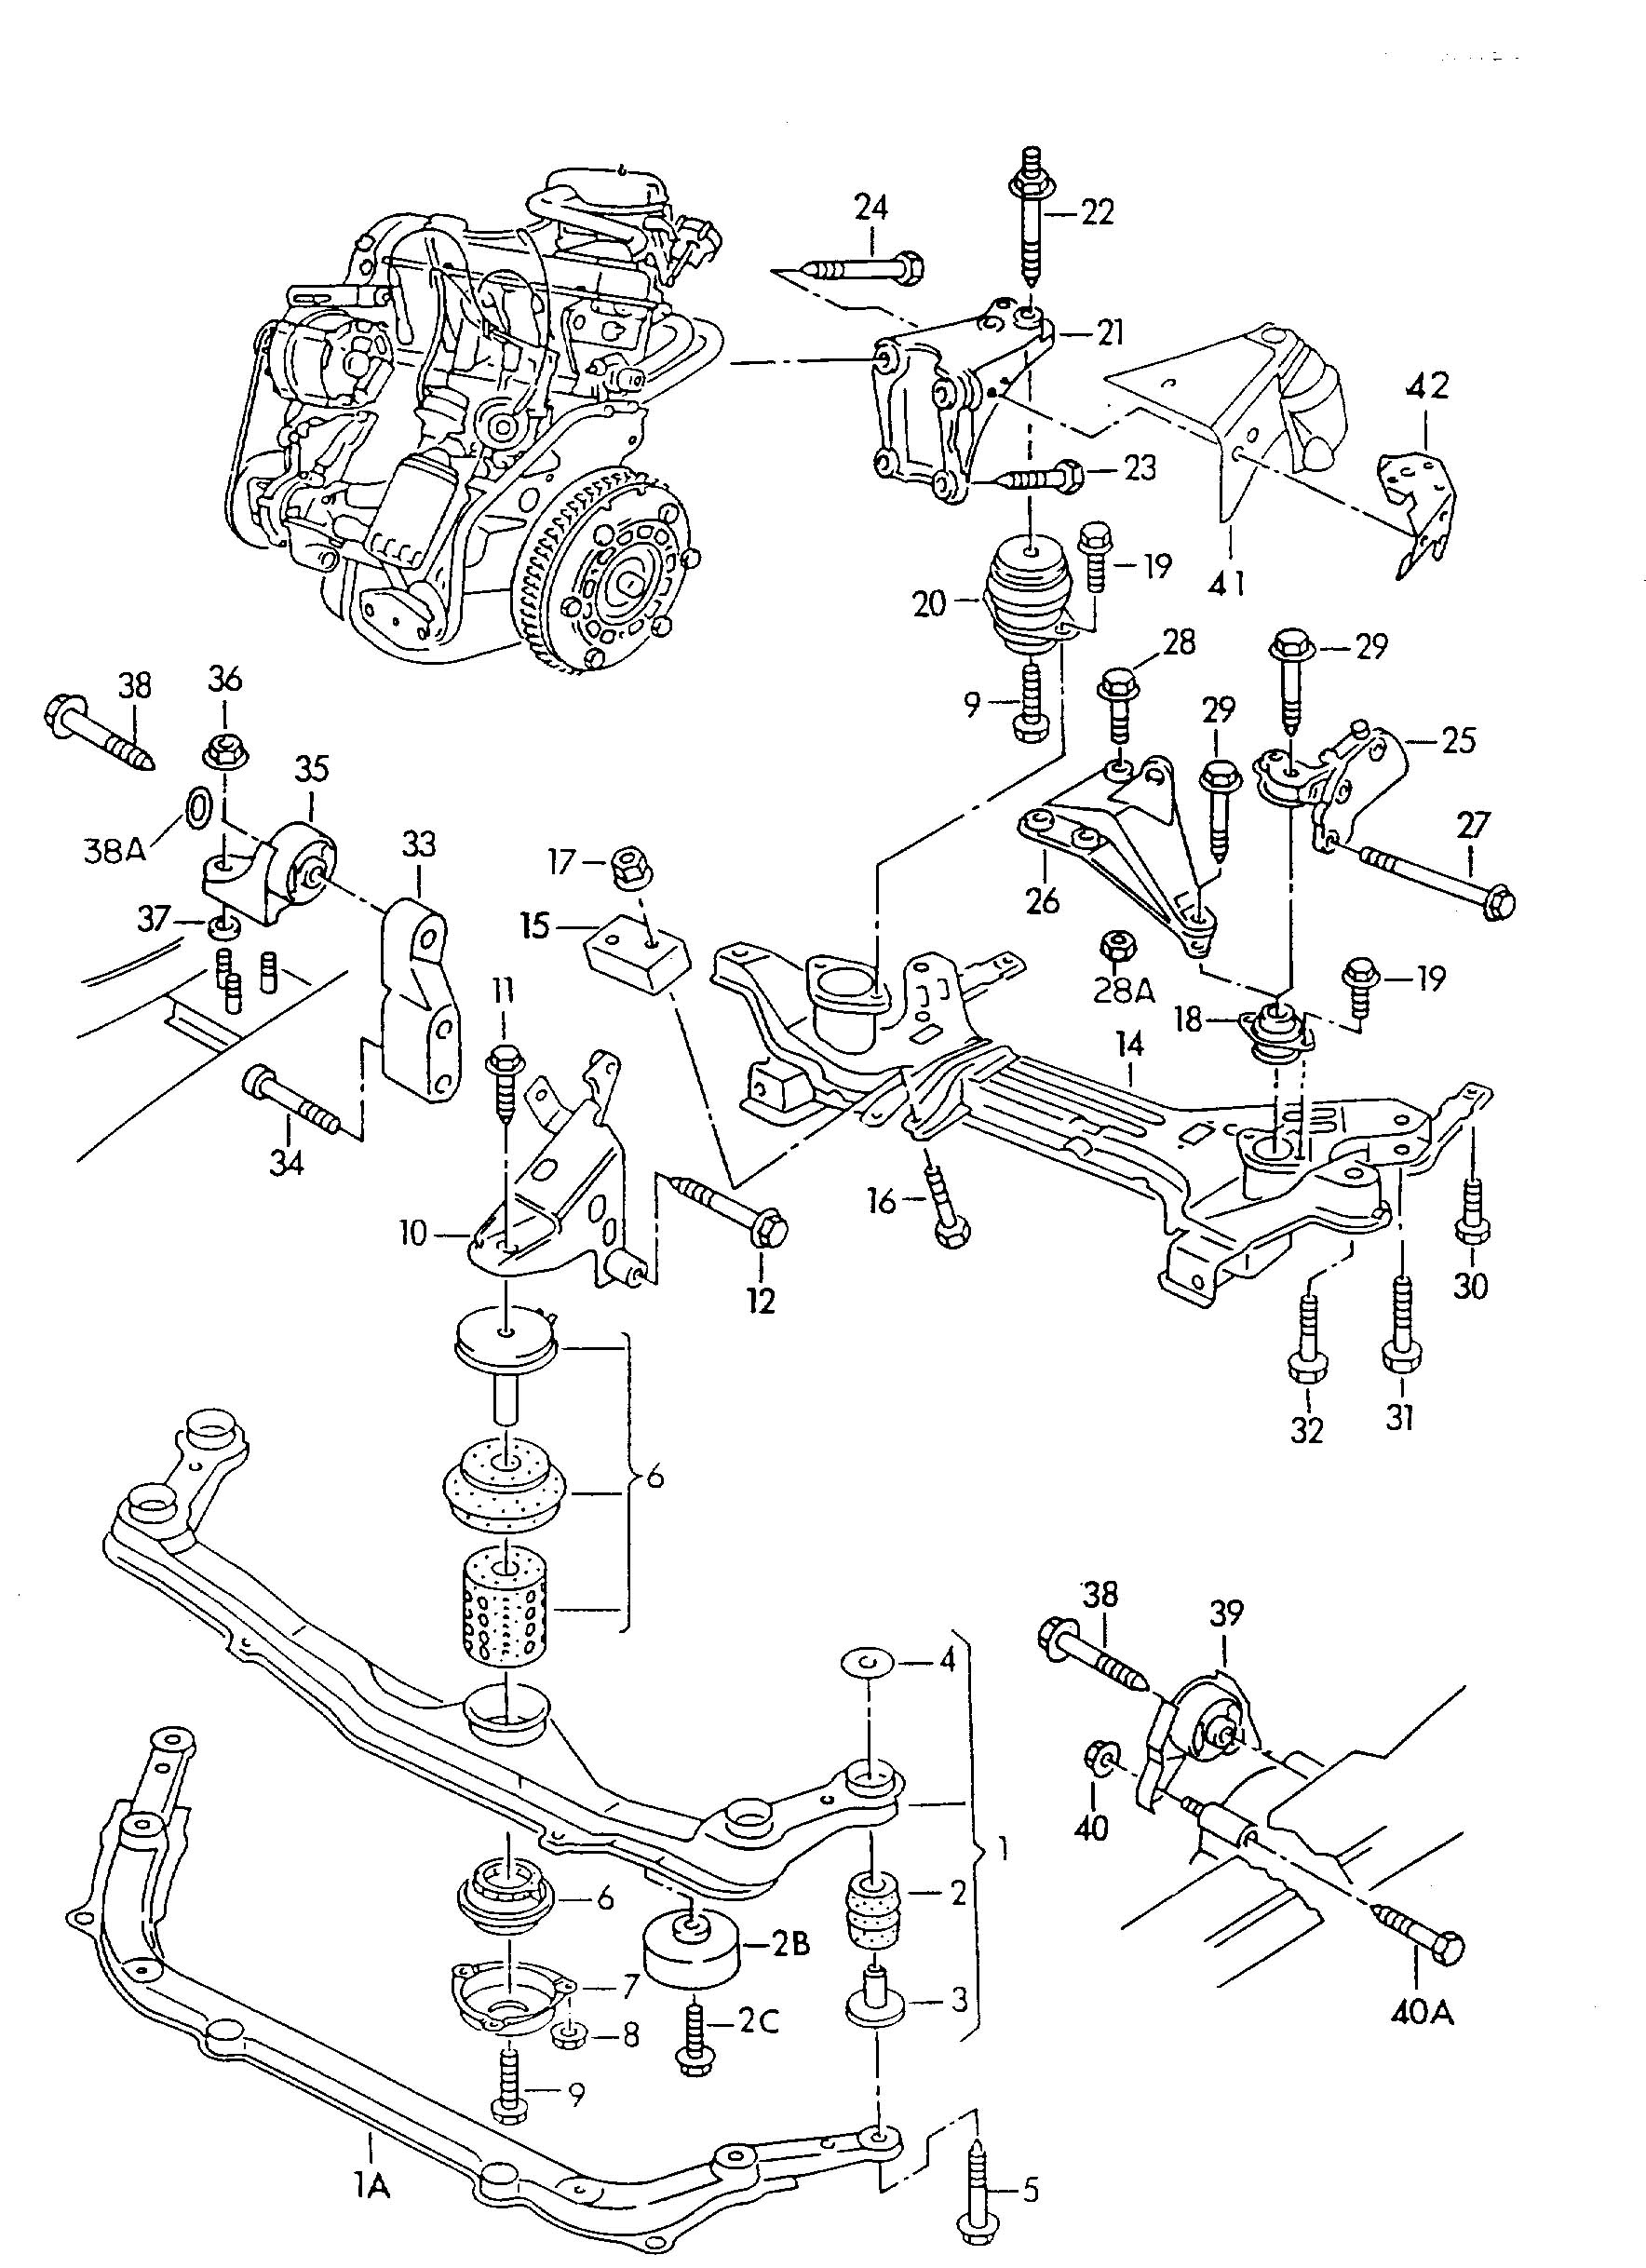 Vw Engine Cover Parts Diagram Vw Free Engine Image